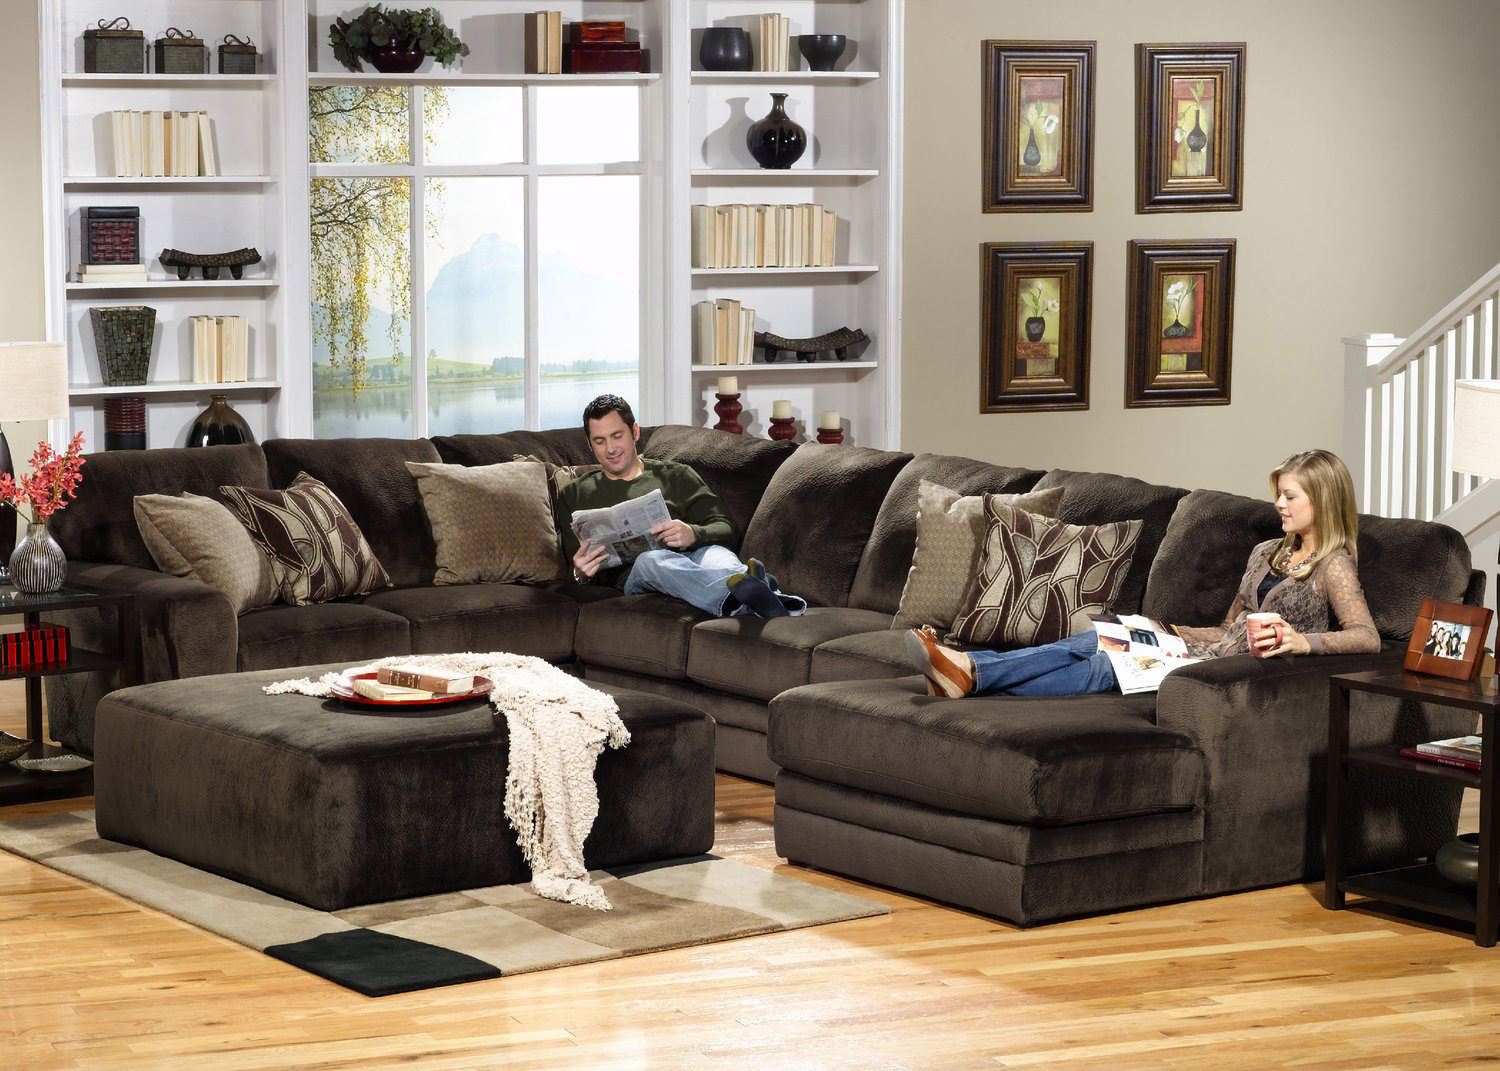 cloud of sofas mn room st sectional photos ezhandui com living american warehouse view recent regarding furniture gallery